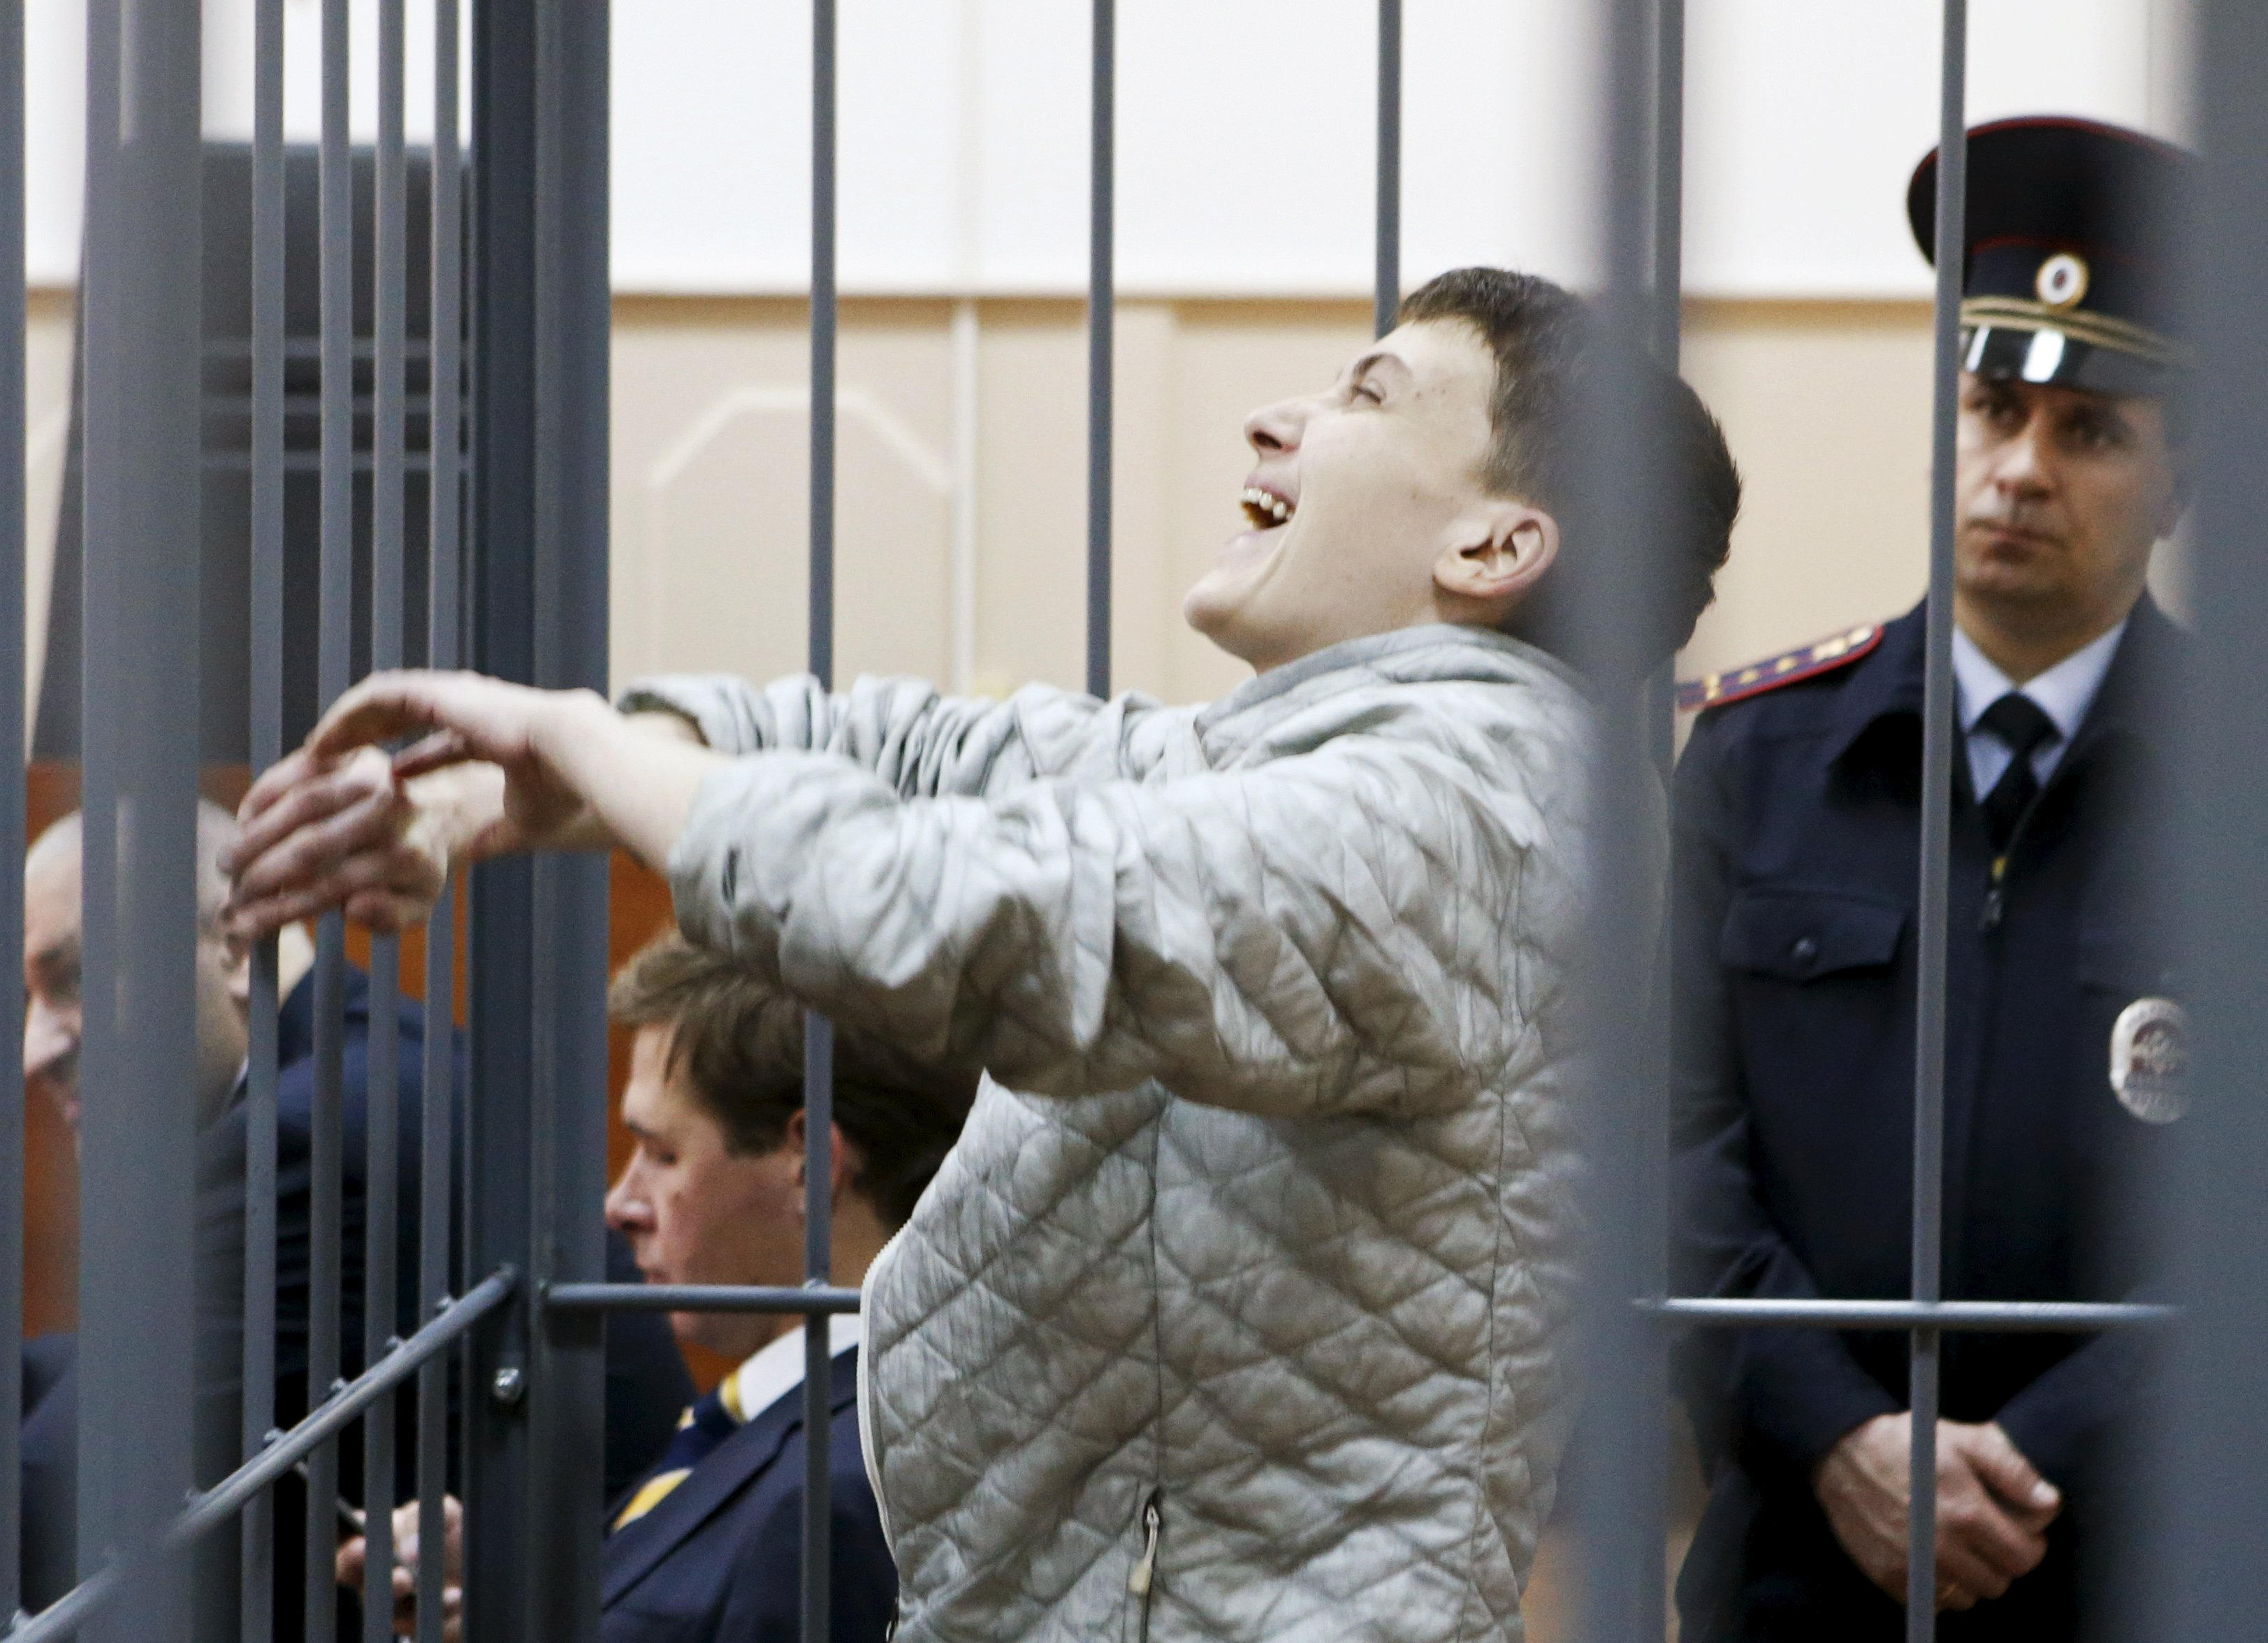 Ukrainian military pilot Nadezhda Savchenko reacts inside a defendants' cage as she attends a court hearing in Moscow, Russia, May 6, 2015. Savchenko, who has become a symbol of resistance in Ukraine to what Kiev and the West see as Russian aggression, is being held in Moscow on charges of aiding the killing of two Russian journalists in east Ukraine last year. REUTERS/Sergei Karpukhin TPX IMAGES OF THE DAY